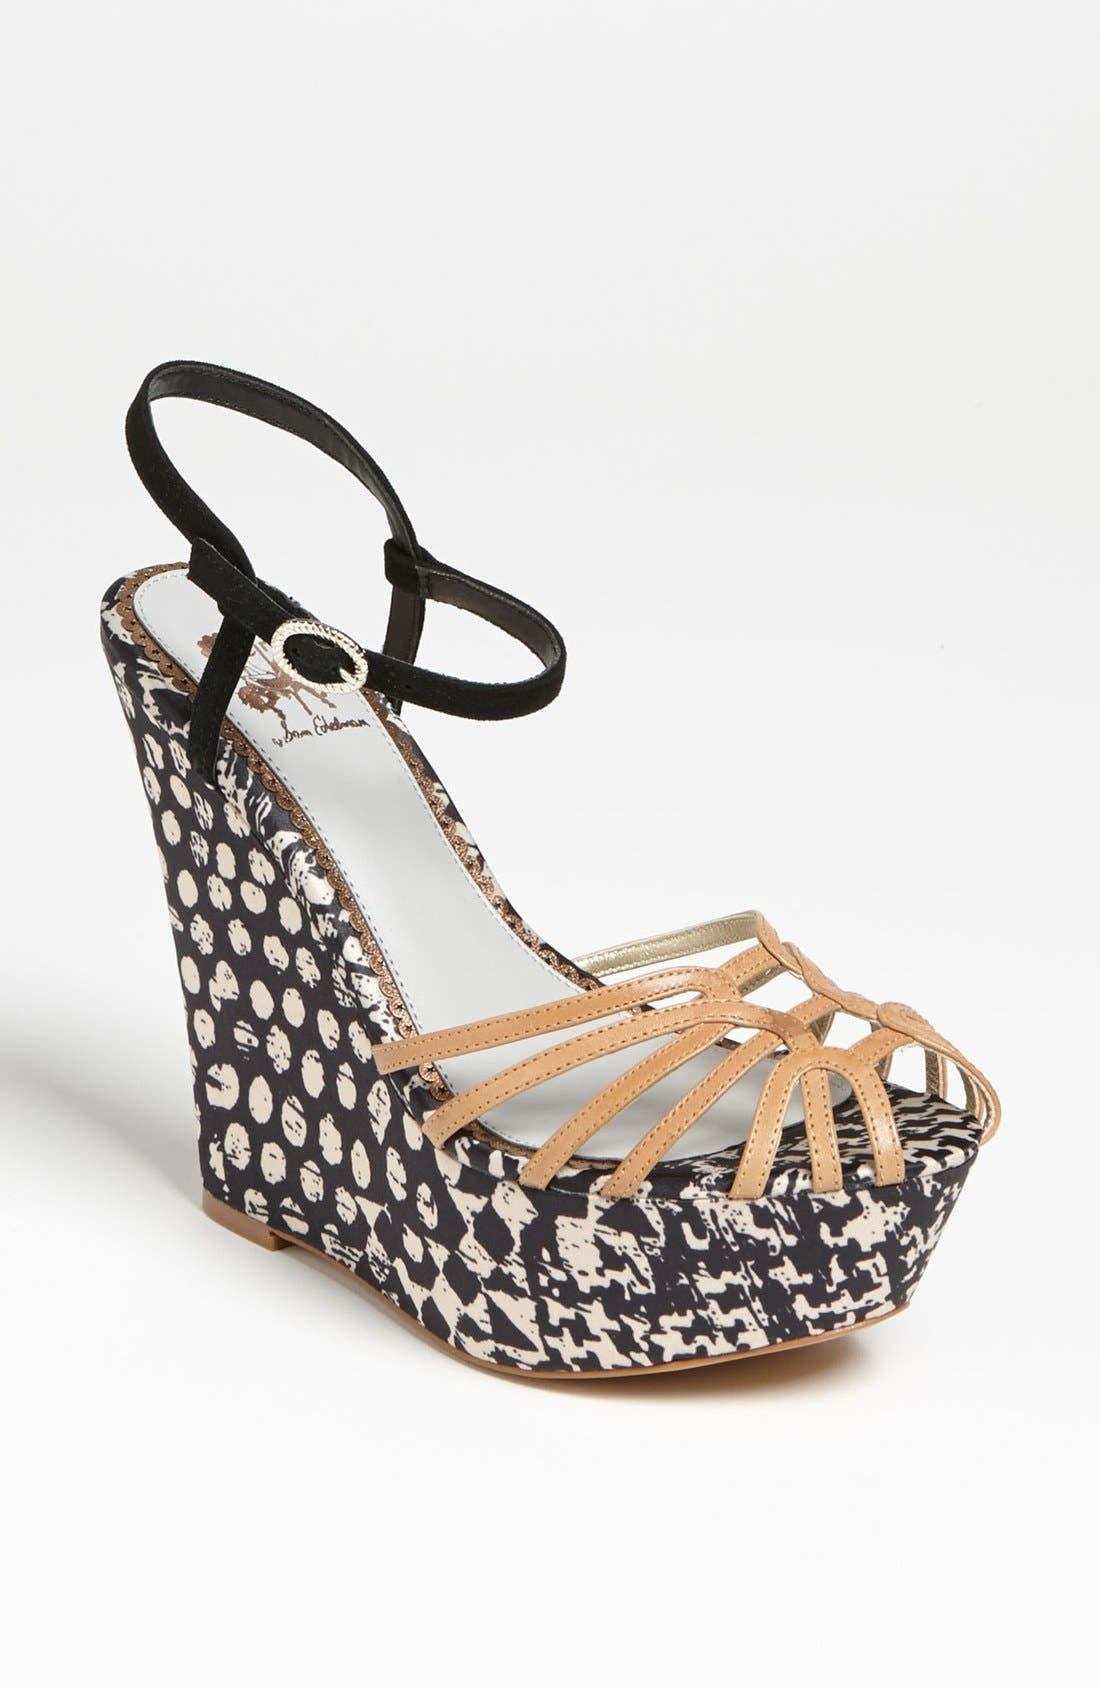 Alternate Image 1 Selected - Circus by Sam Edelman 'Coco' Sandal